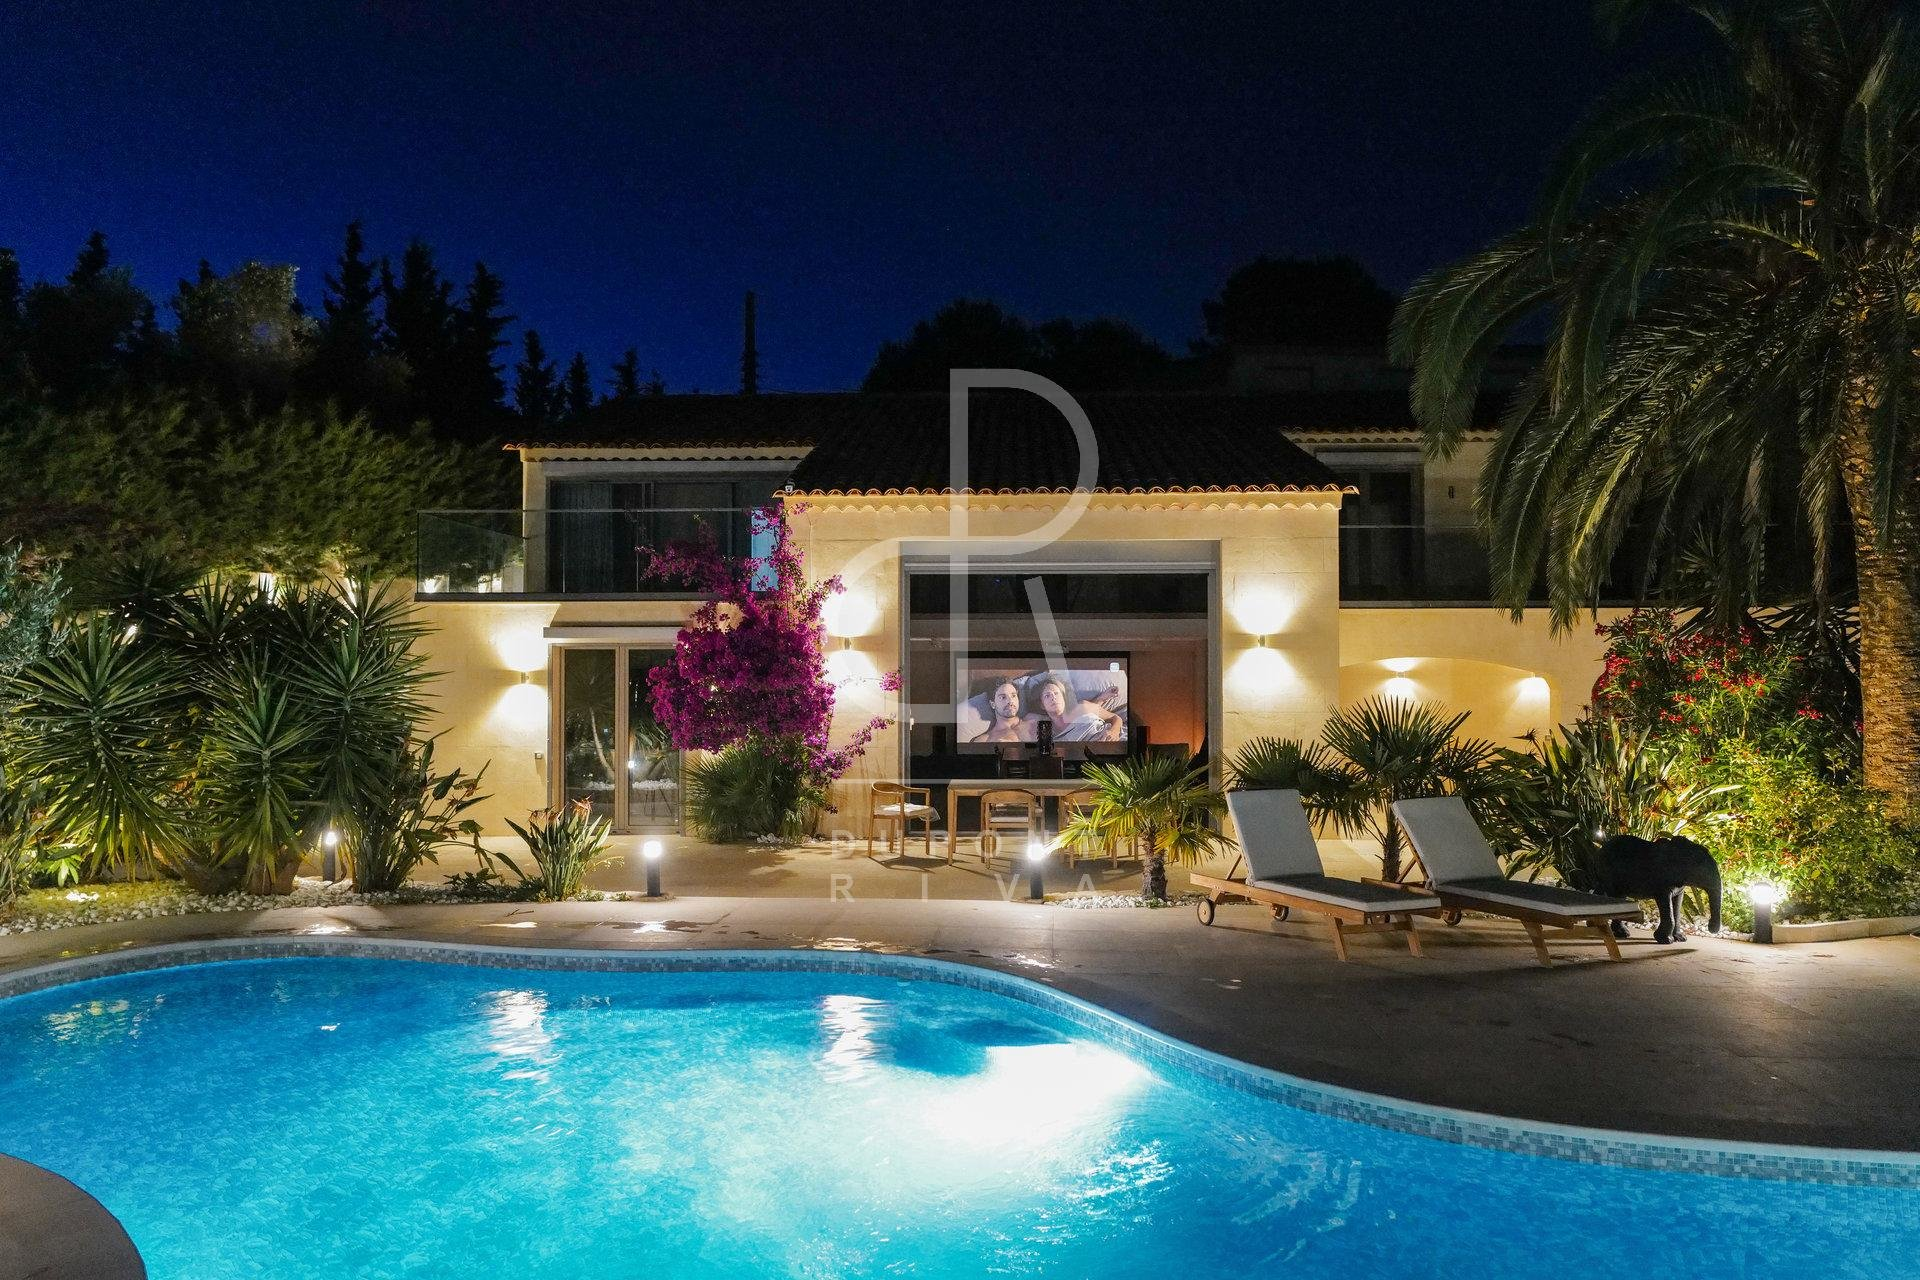 Super  villa in Cannes with swimming pool